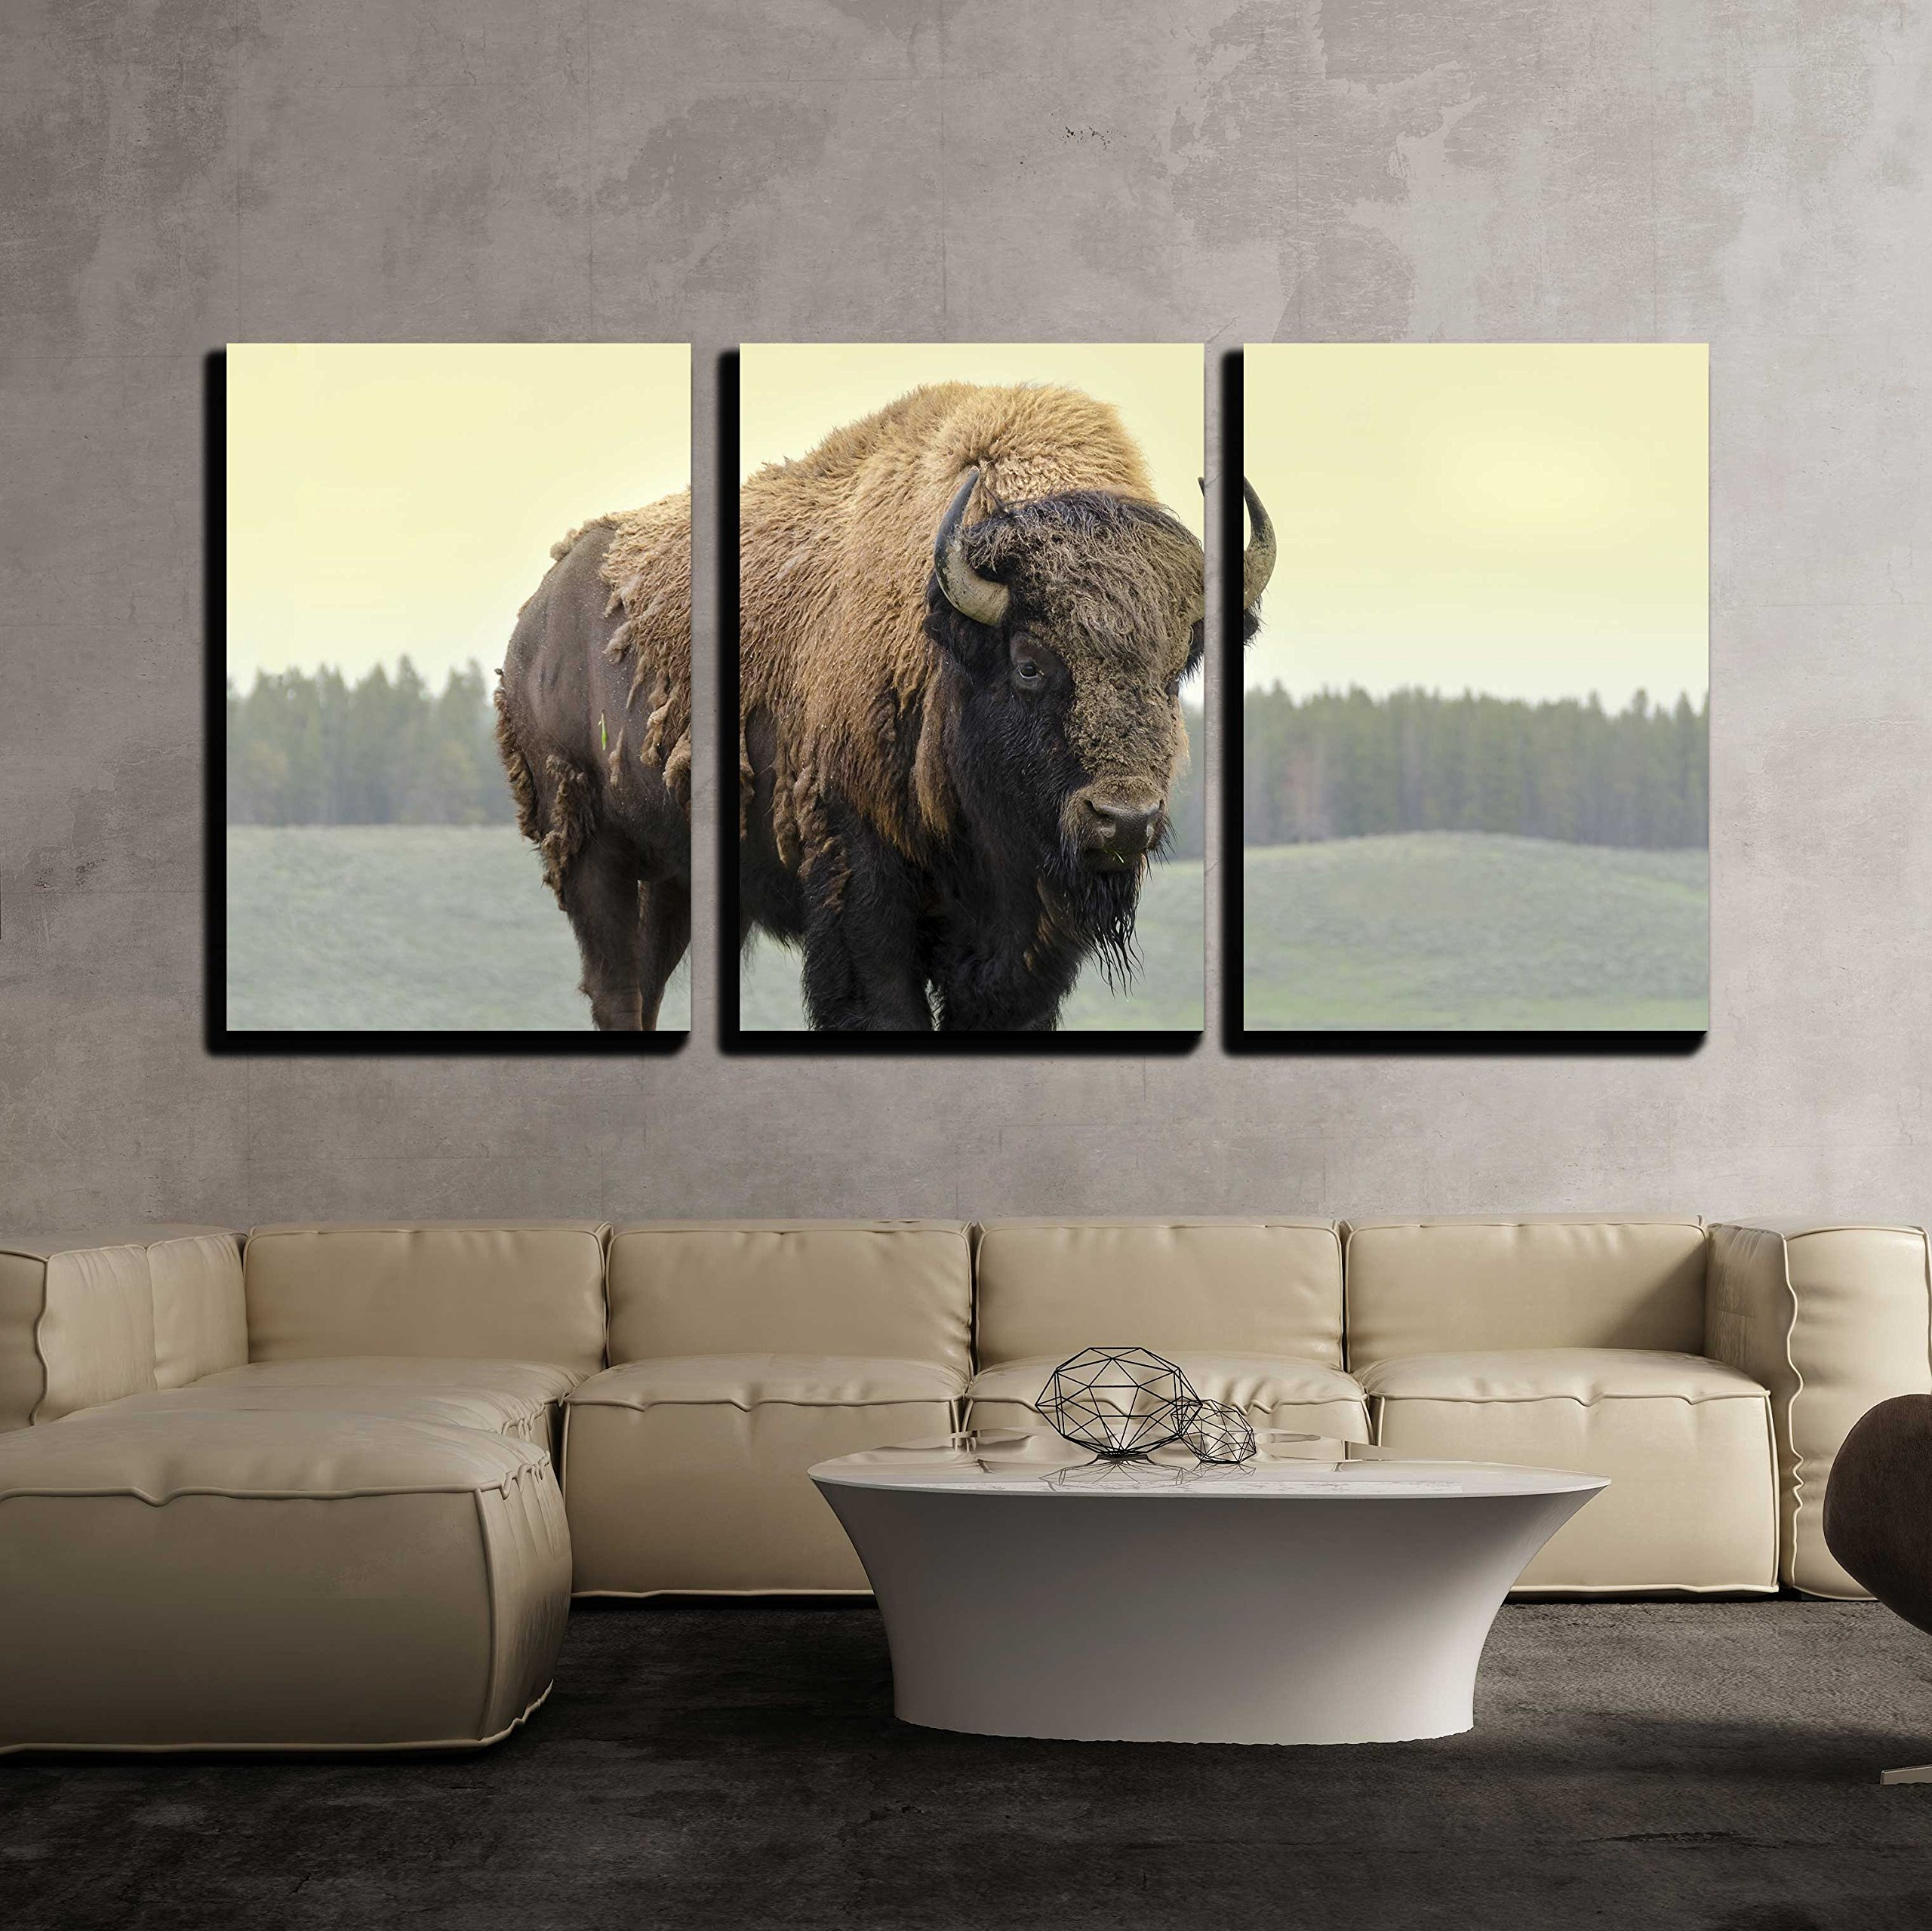 wall26 - 3 Piece Canvas Wall Art - Bison in Grasslands of Yellowstone National Park in Wyoming - Modern Home Decor Stretched and Framed Ready to Hang - 24''x36''x3 Panels